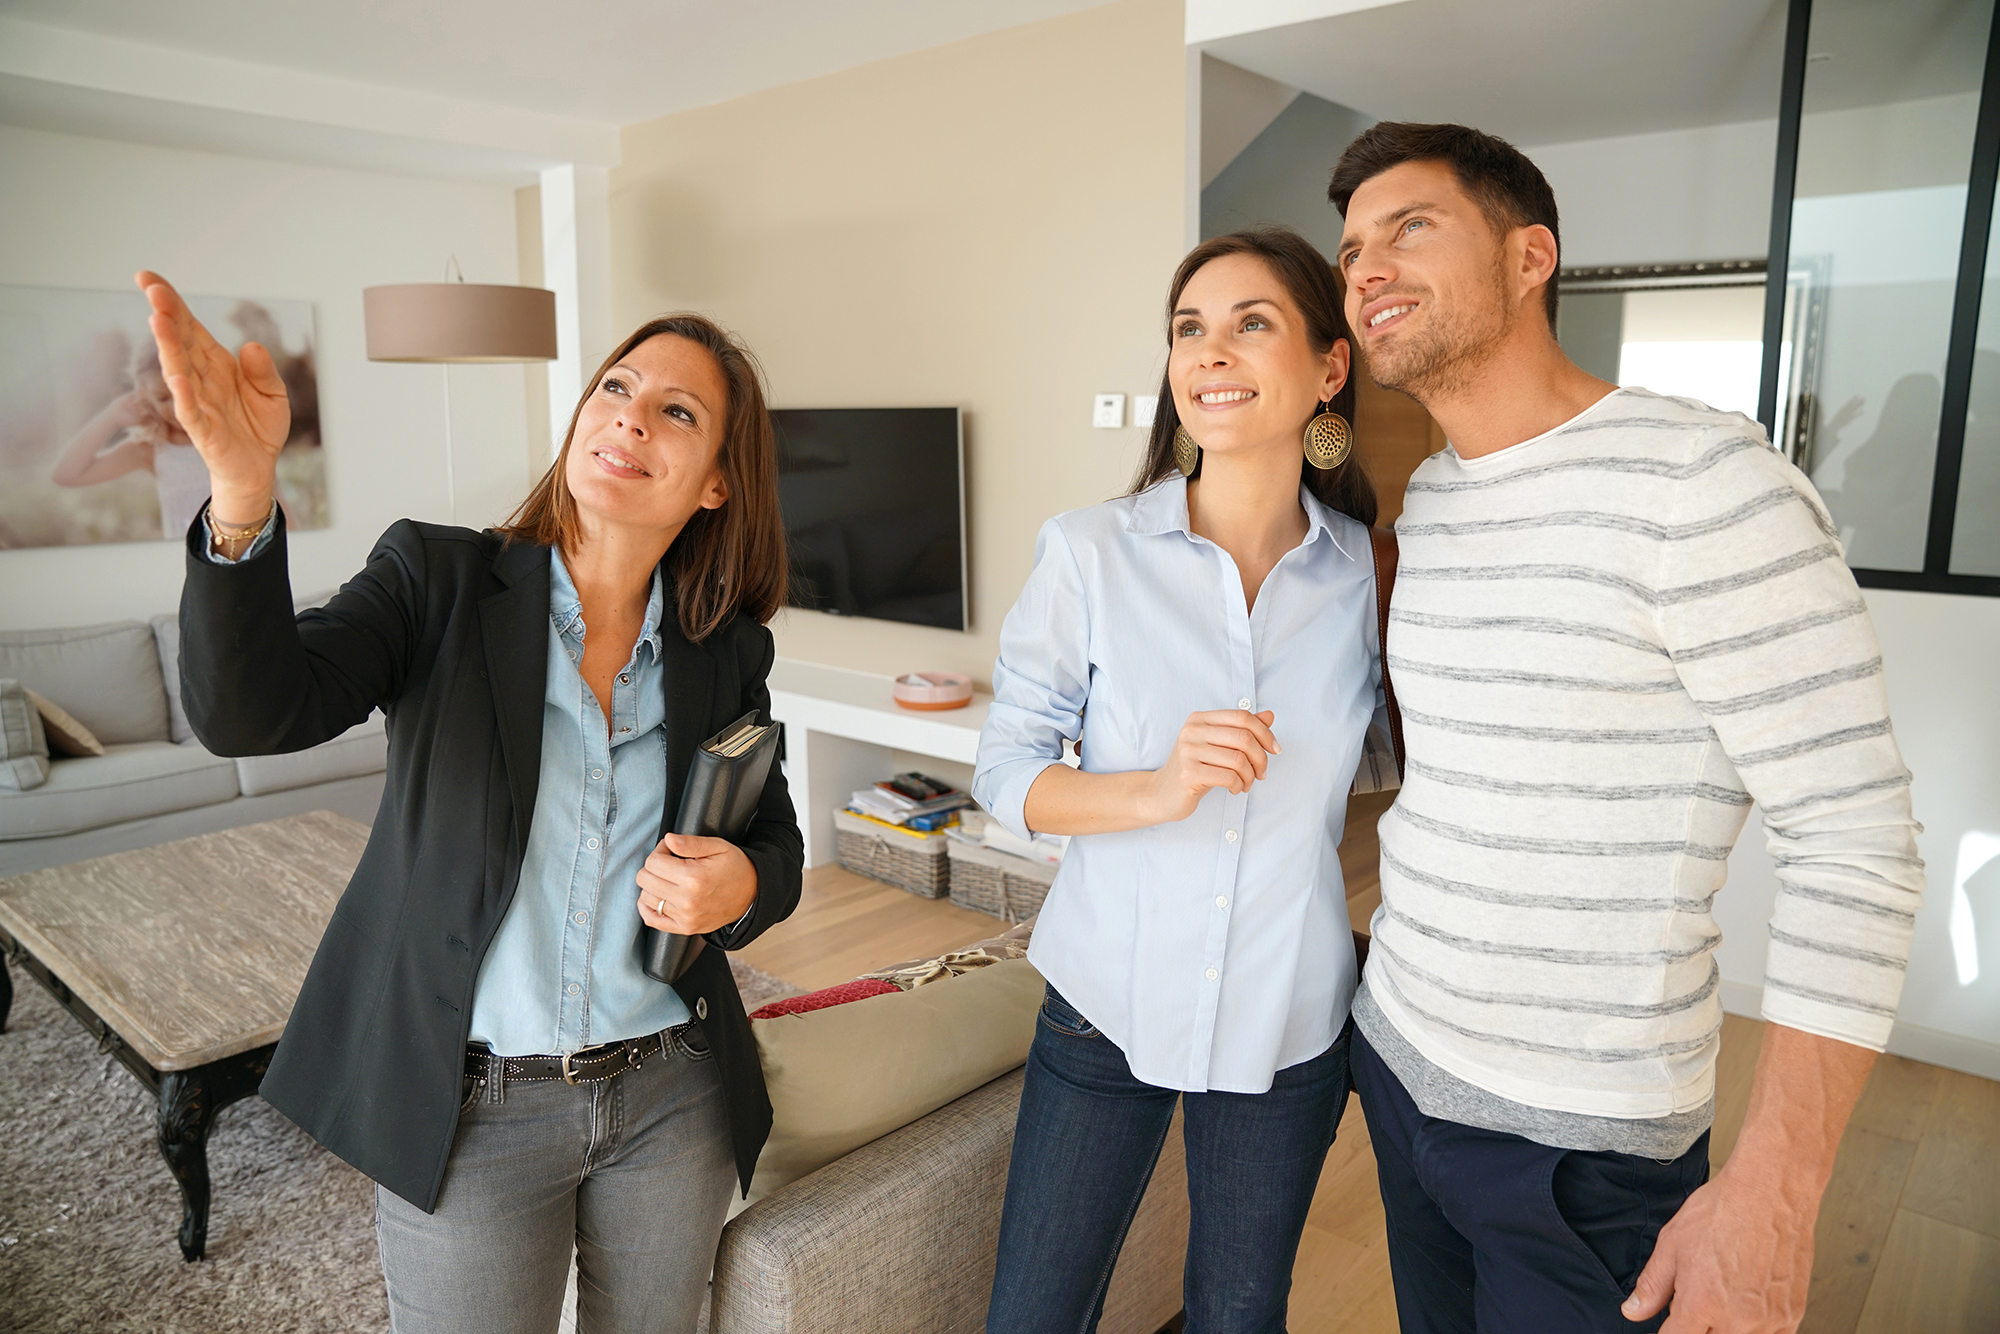 Estate agent showing a couple a house. (Image: Shutterstock)